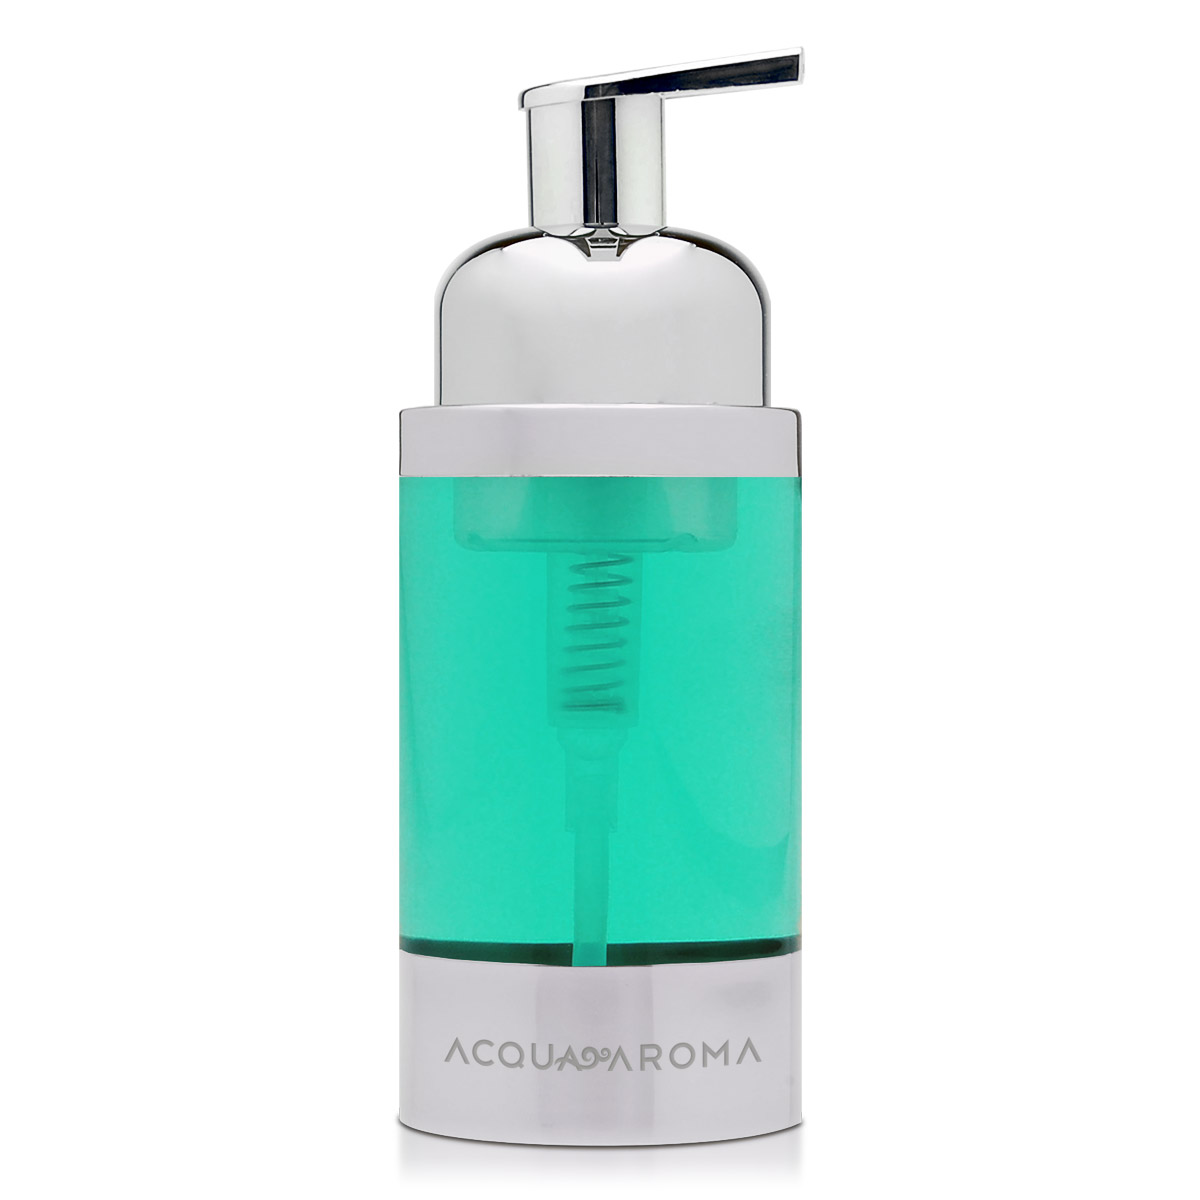 Design Collection Rosemary Gentle Foaming Hand Soap 8.45 FL OZ (250ml)